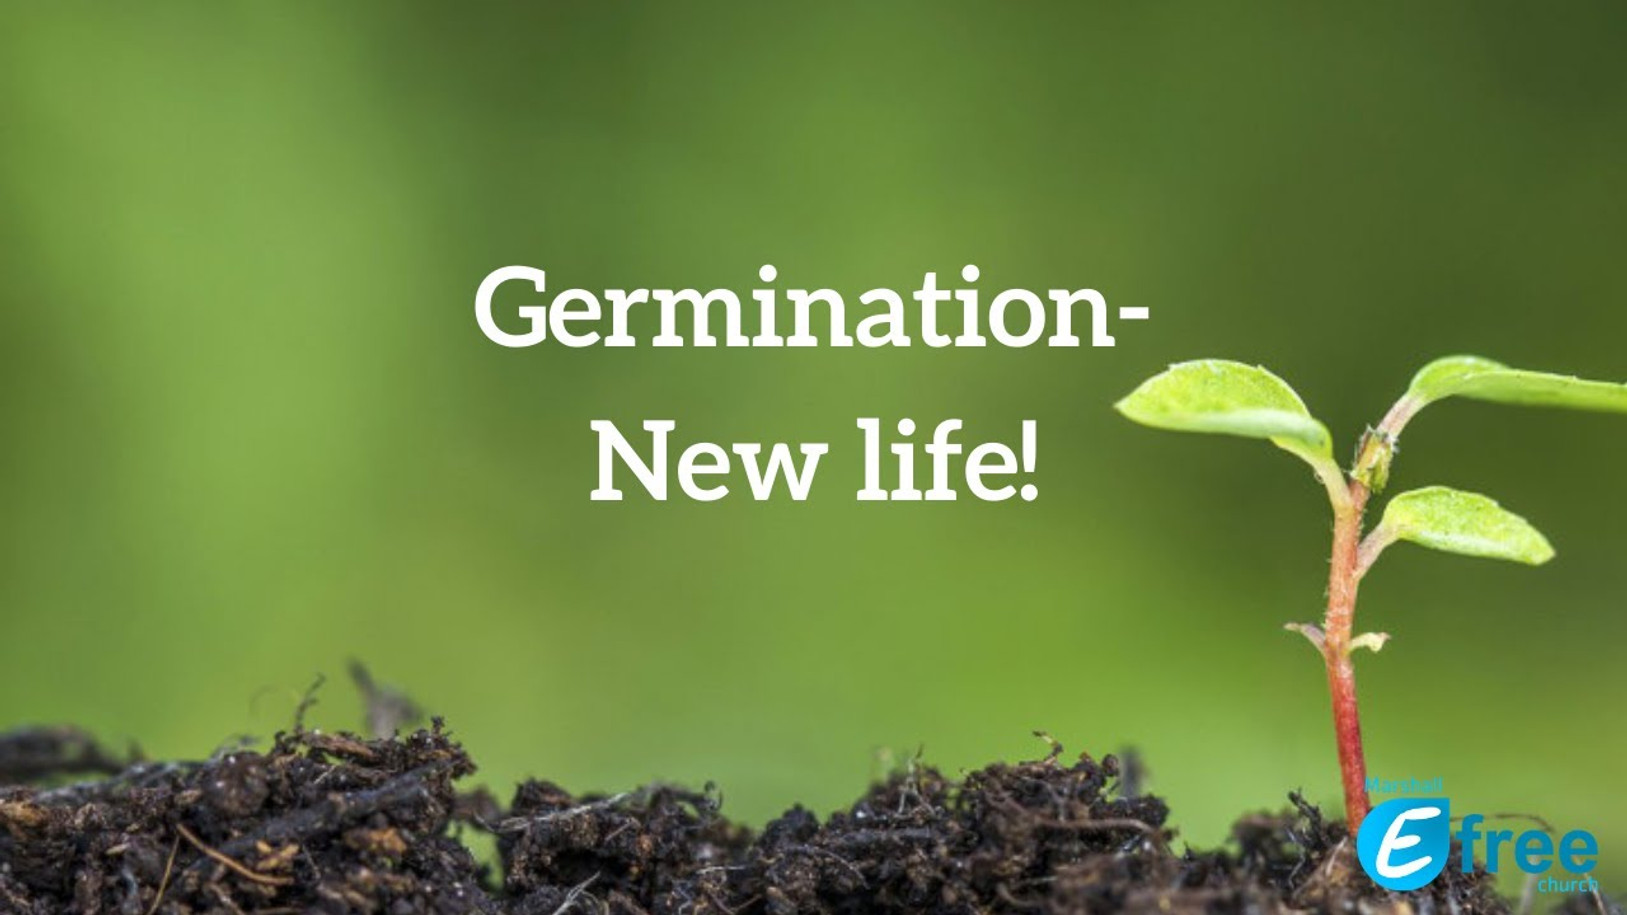 Germination - New life!